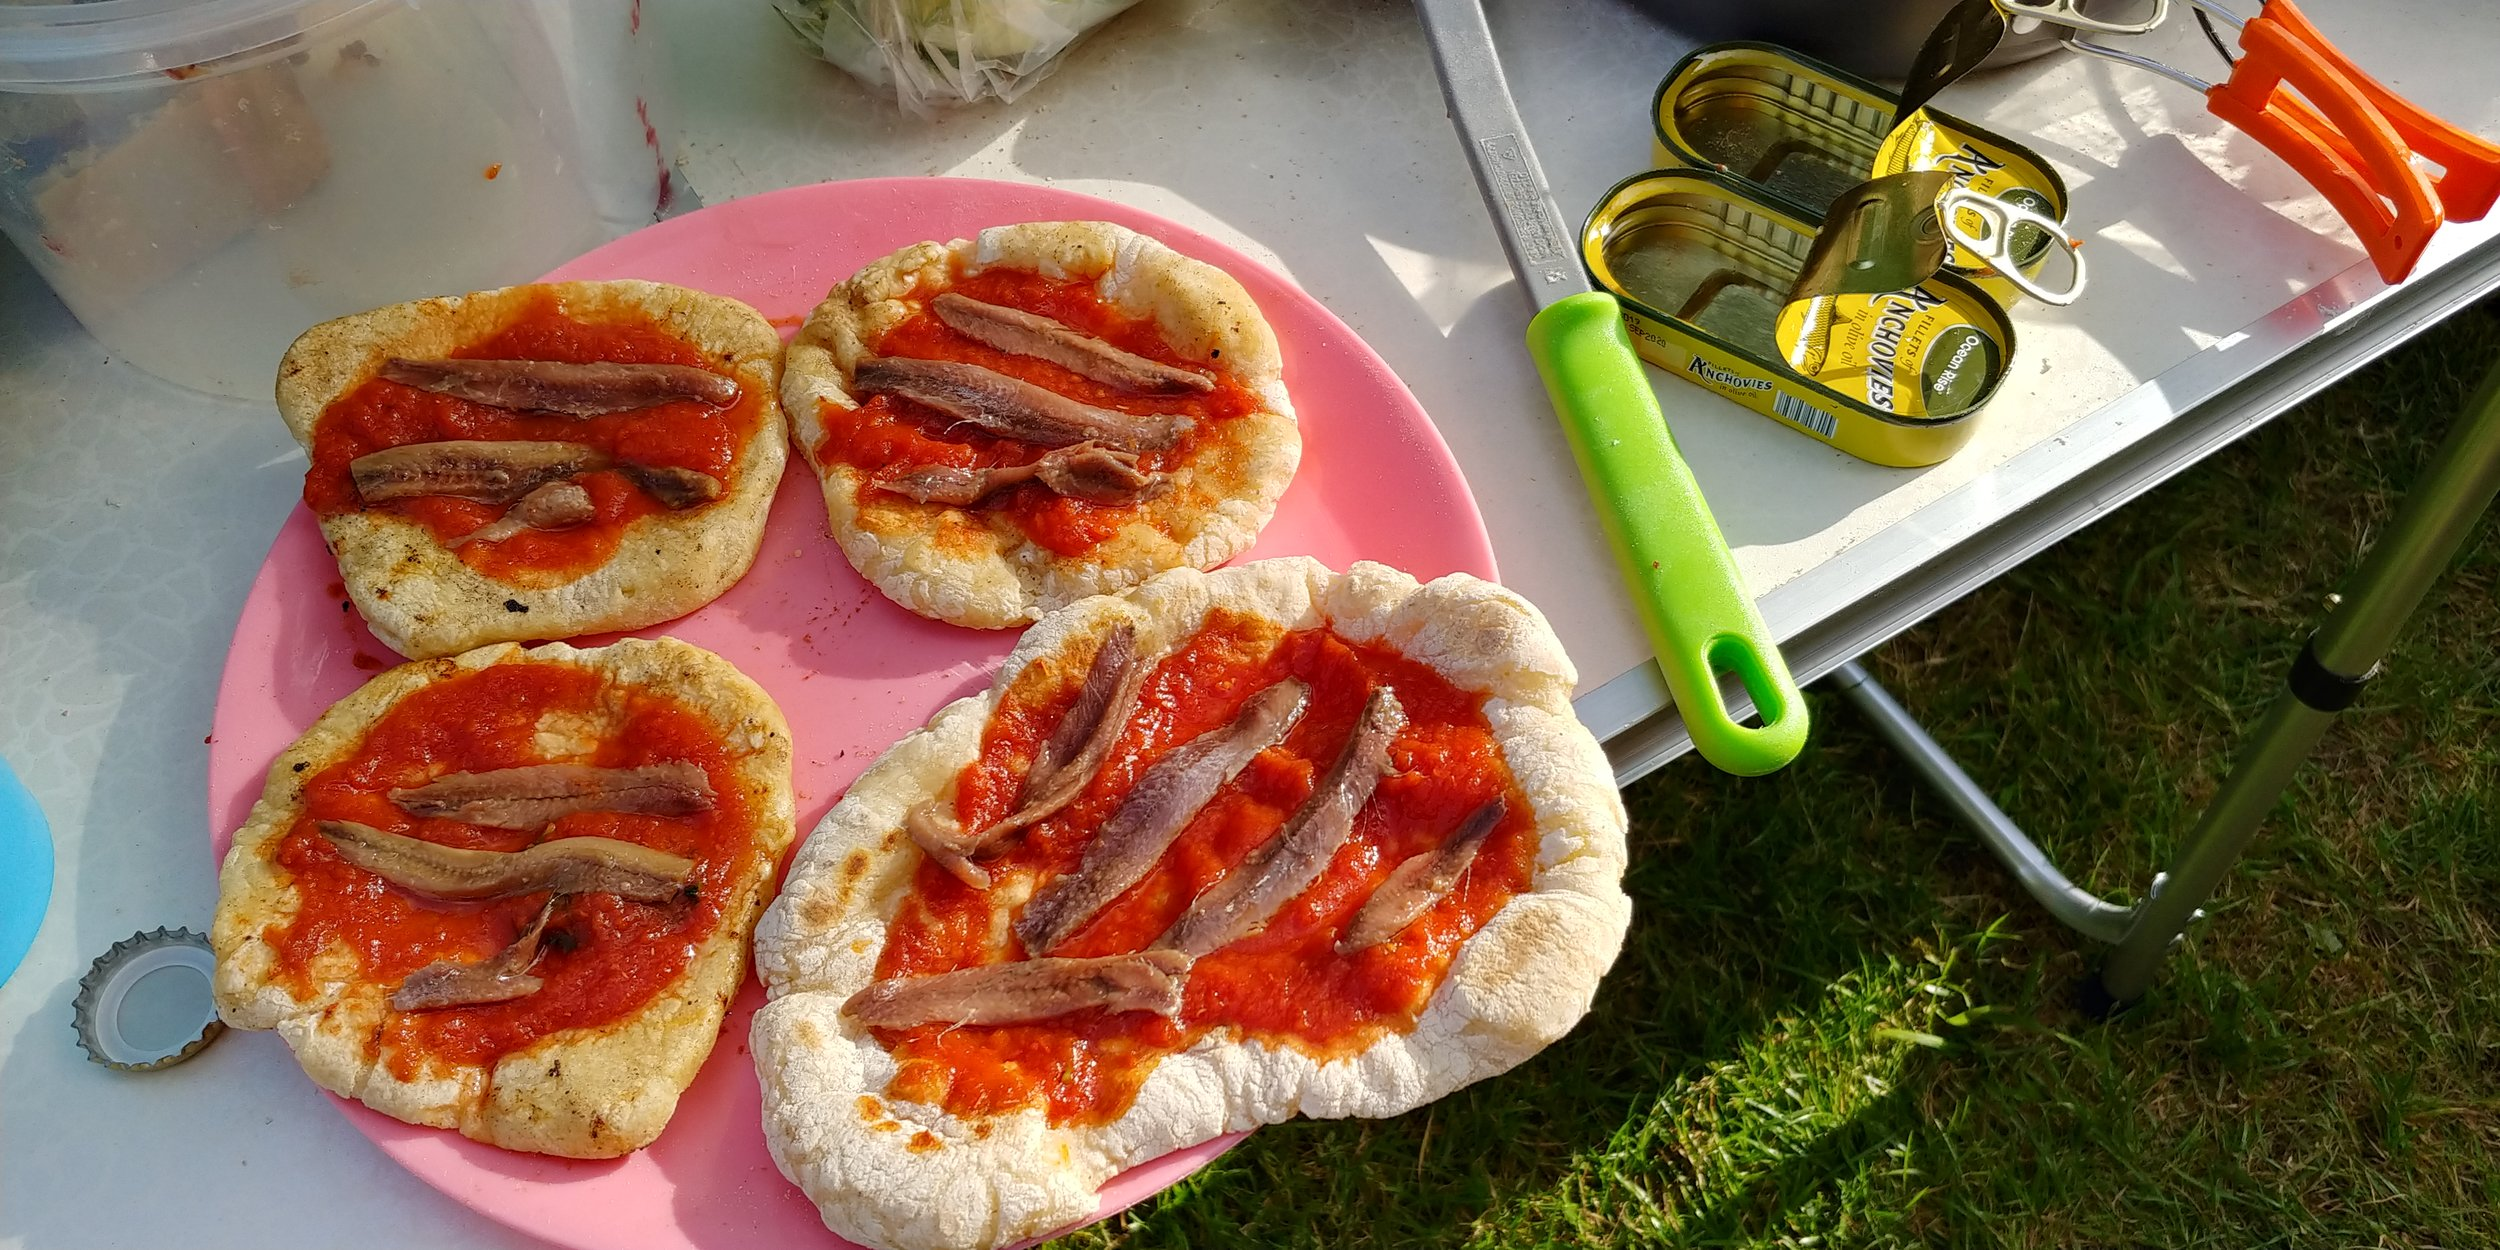 Camping cuisine, Italian style.